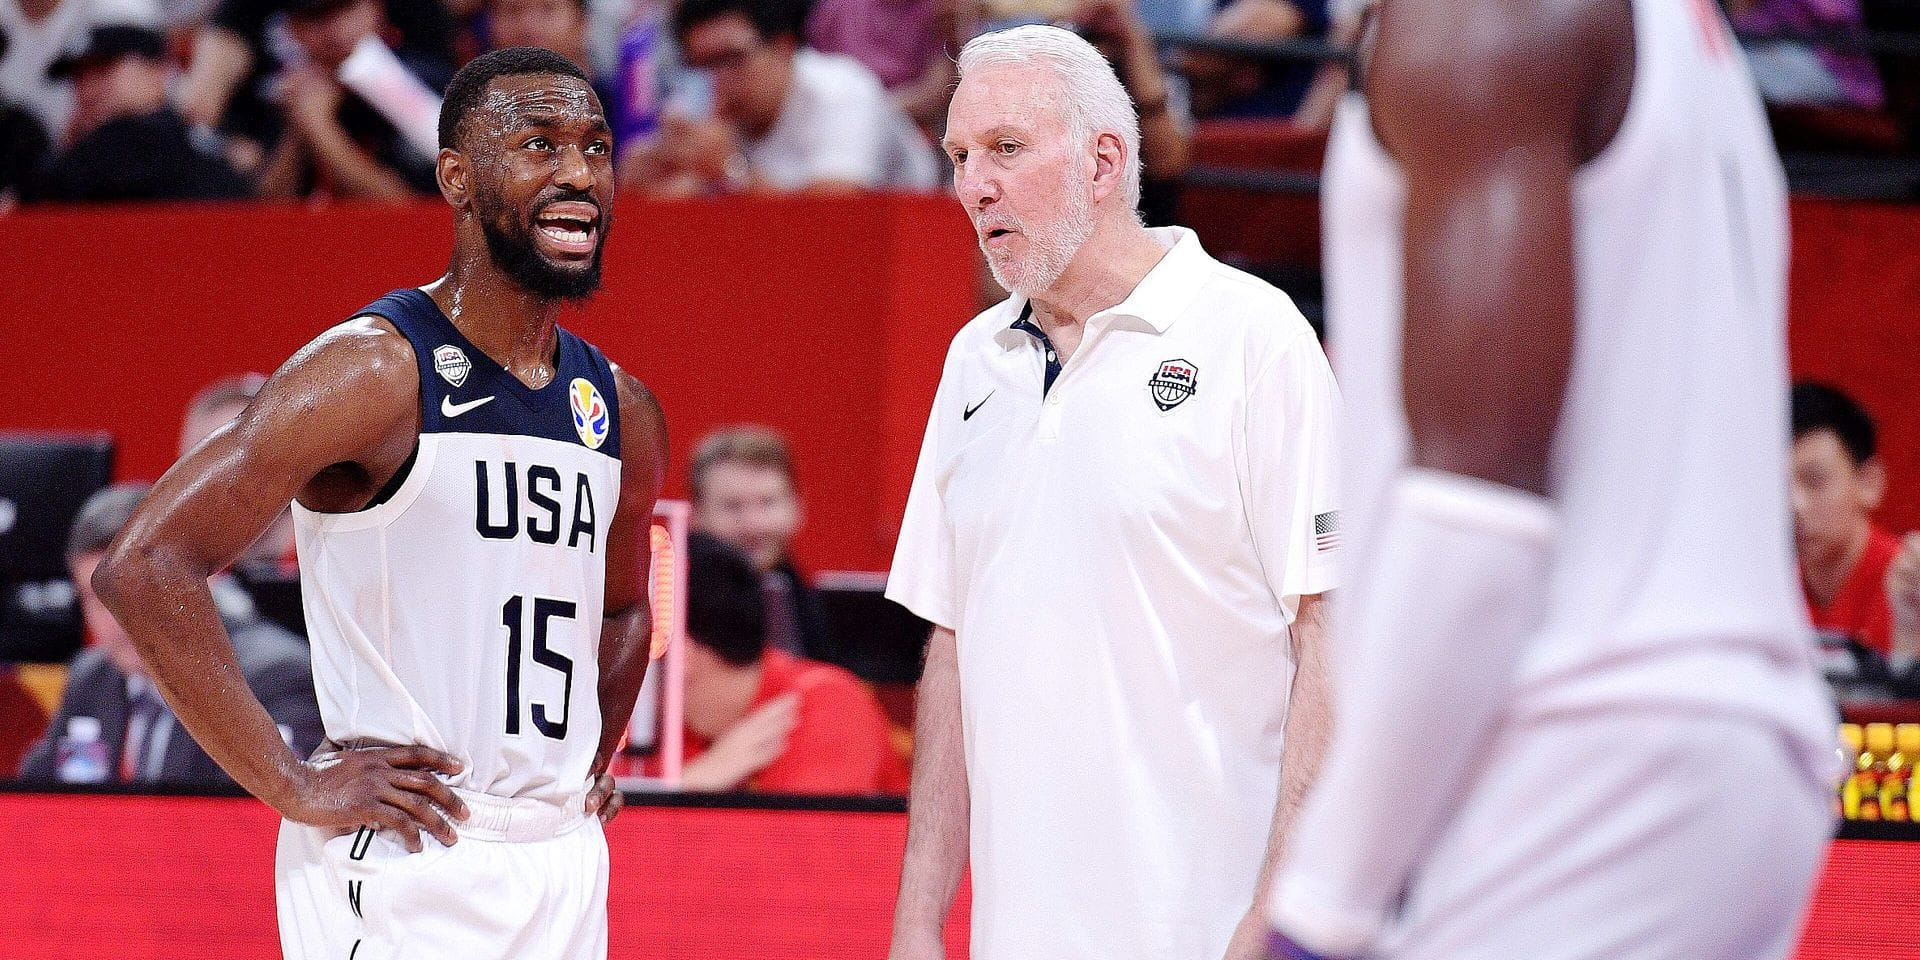 Kemba Walker (L) of the US speaks to his team's coach Gregg Popovich during the Basketball World Cup Group K second round game between US and Brazil in Shenzhen on September 9, 2019. (Photo by Nicolas ASFOURI / AFP)